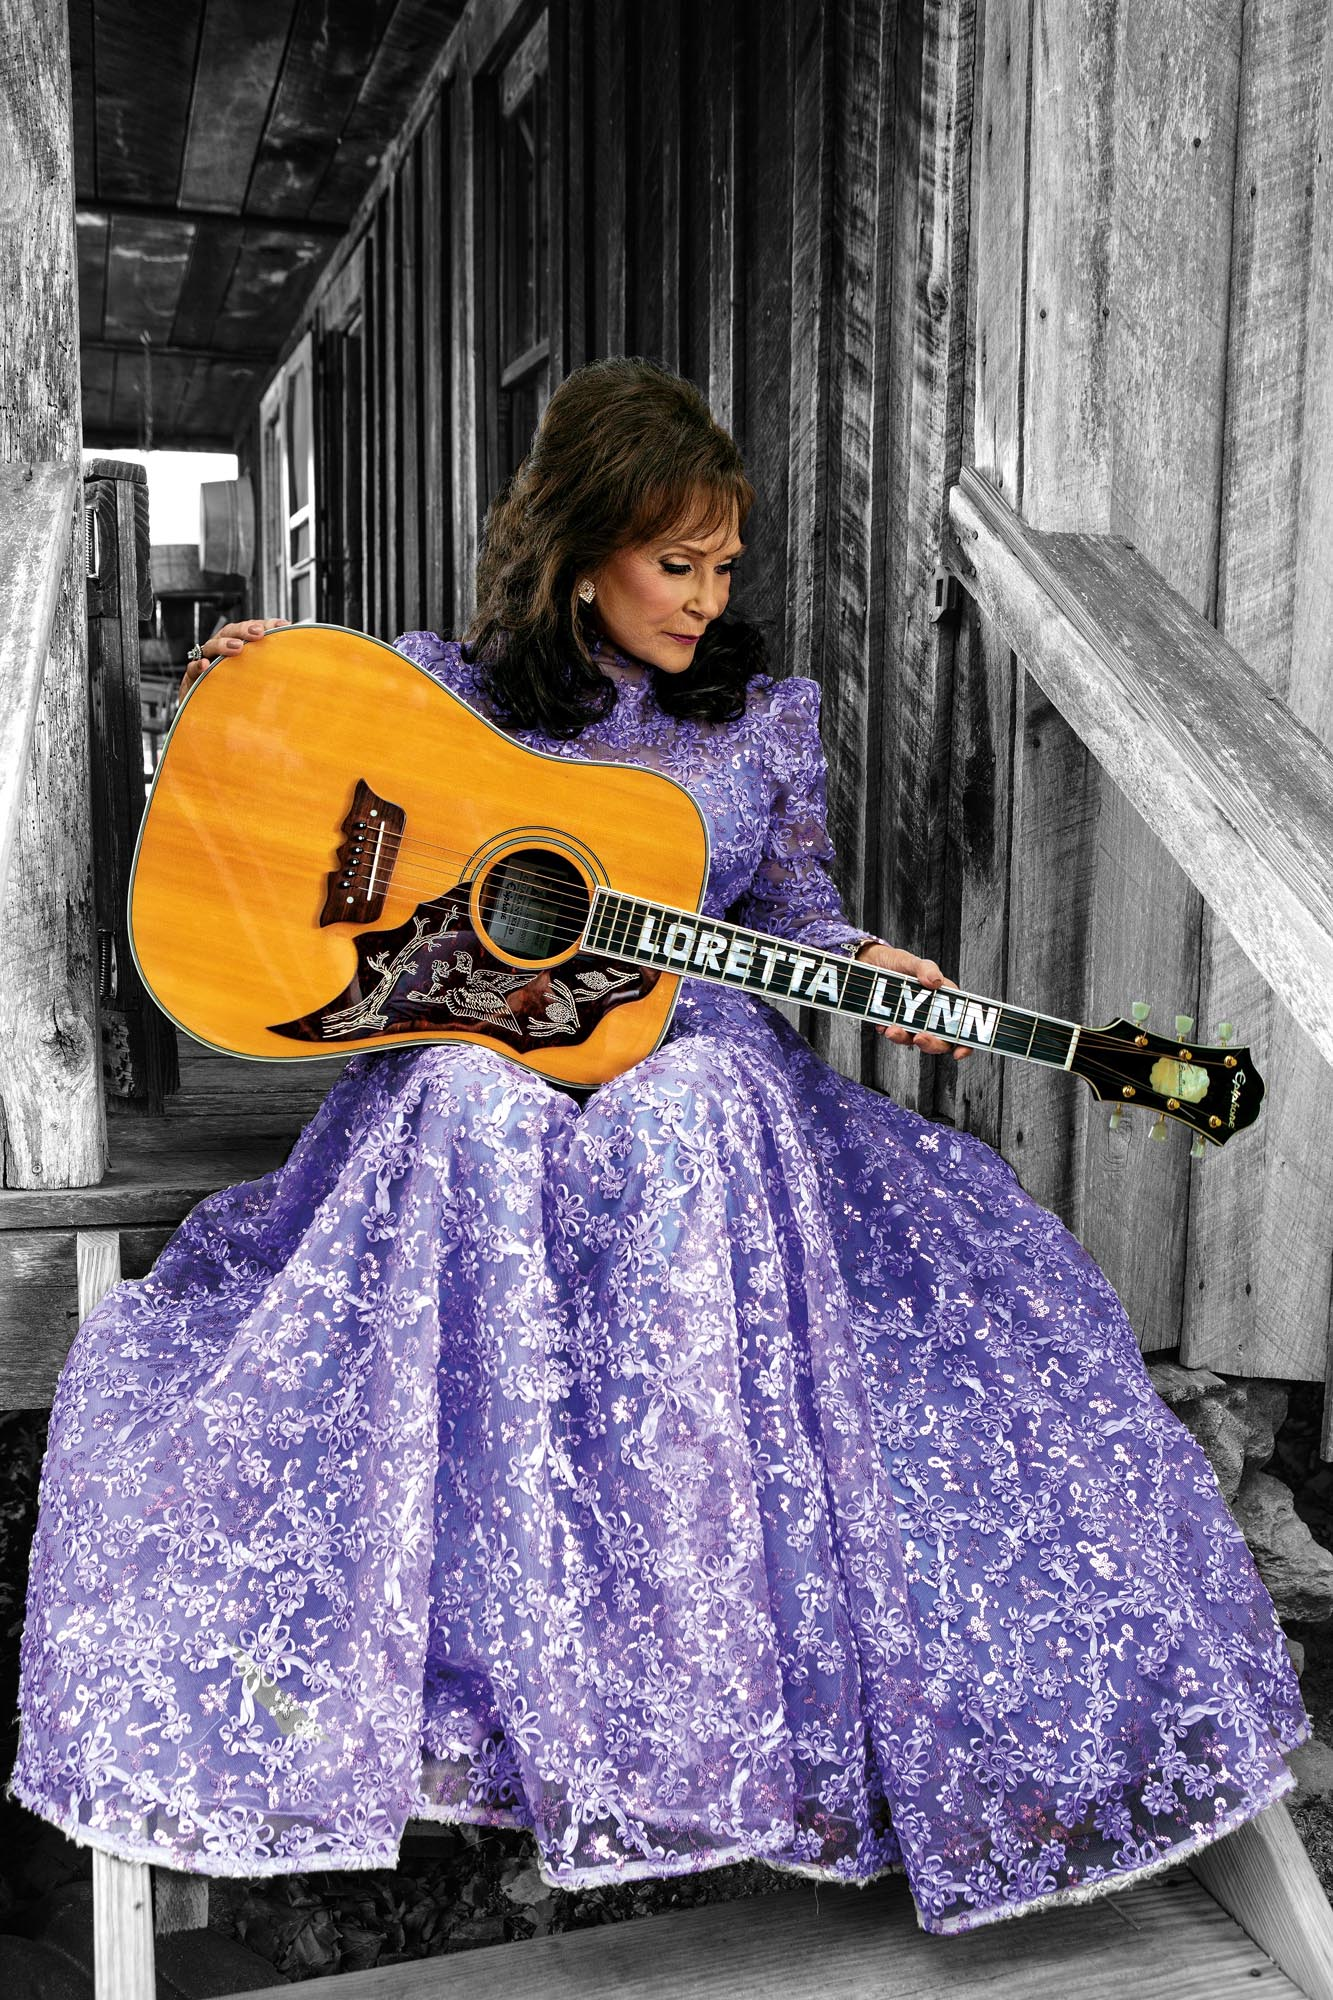 Wallpaper Country Girl The Legendary Coal Miner S Daughter Loretta Lynn